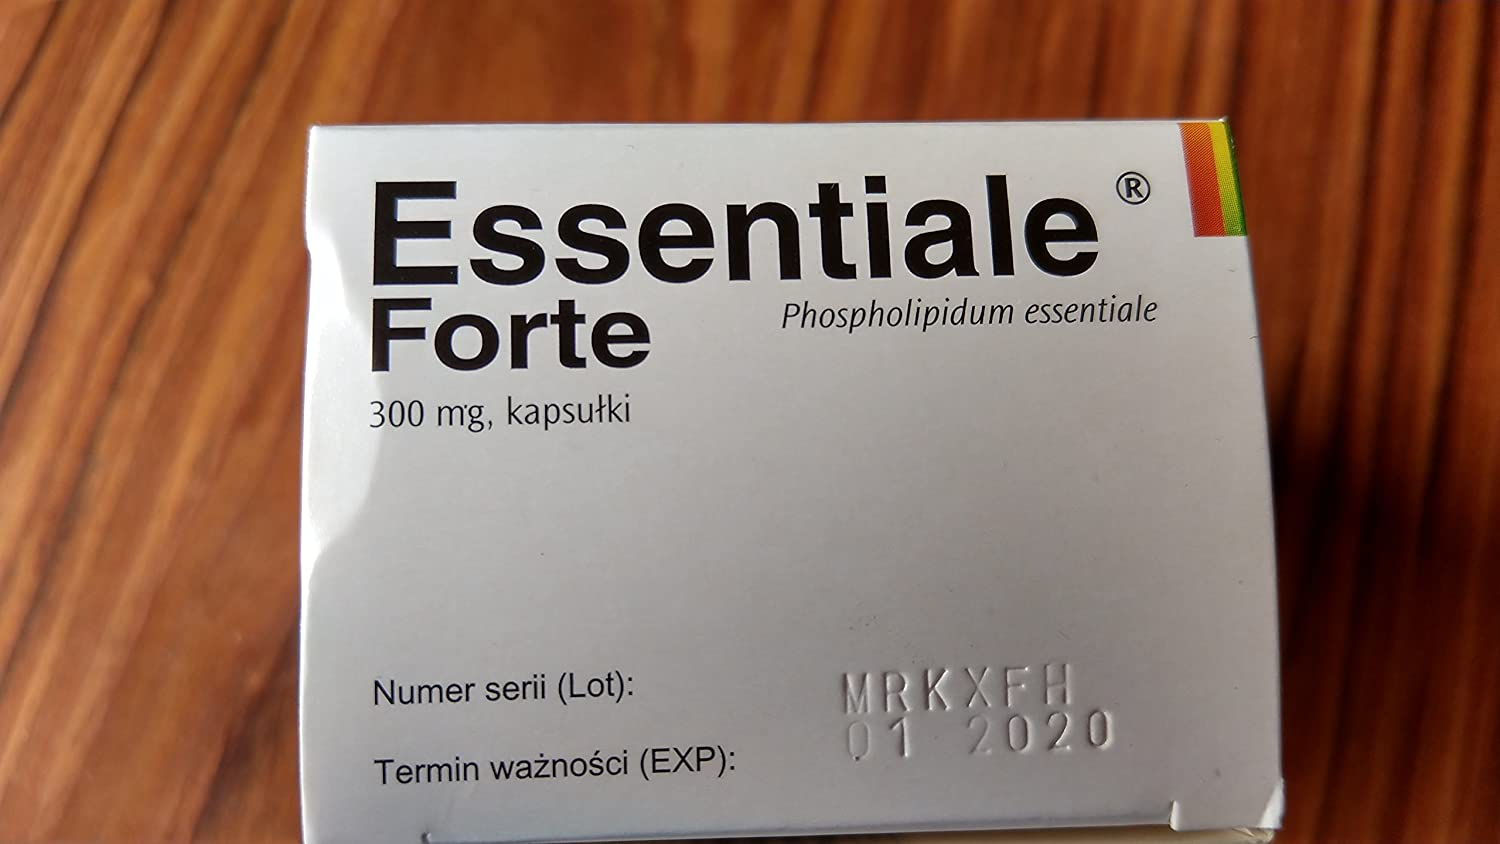 Essentiale Forte: reviews of patients and doctors. Essentiale Forte during pregnancy: reviews 84